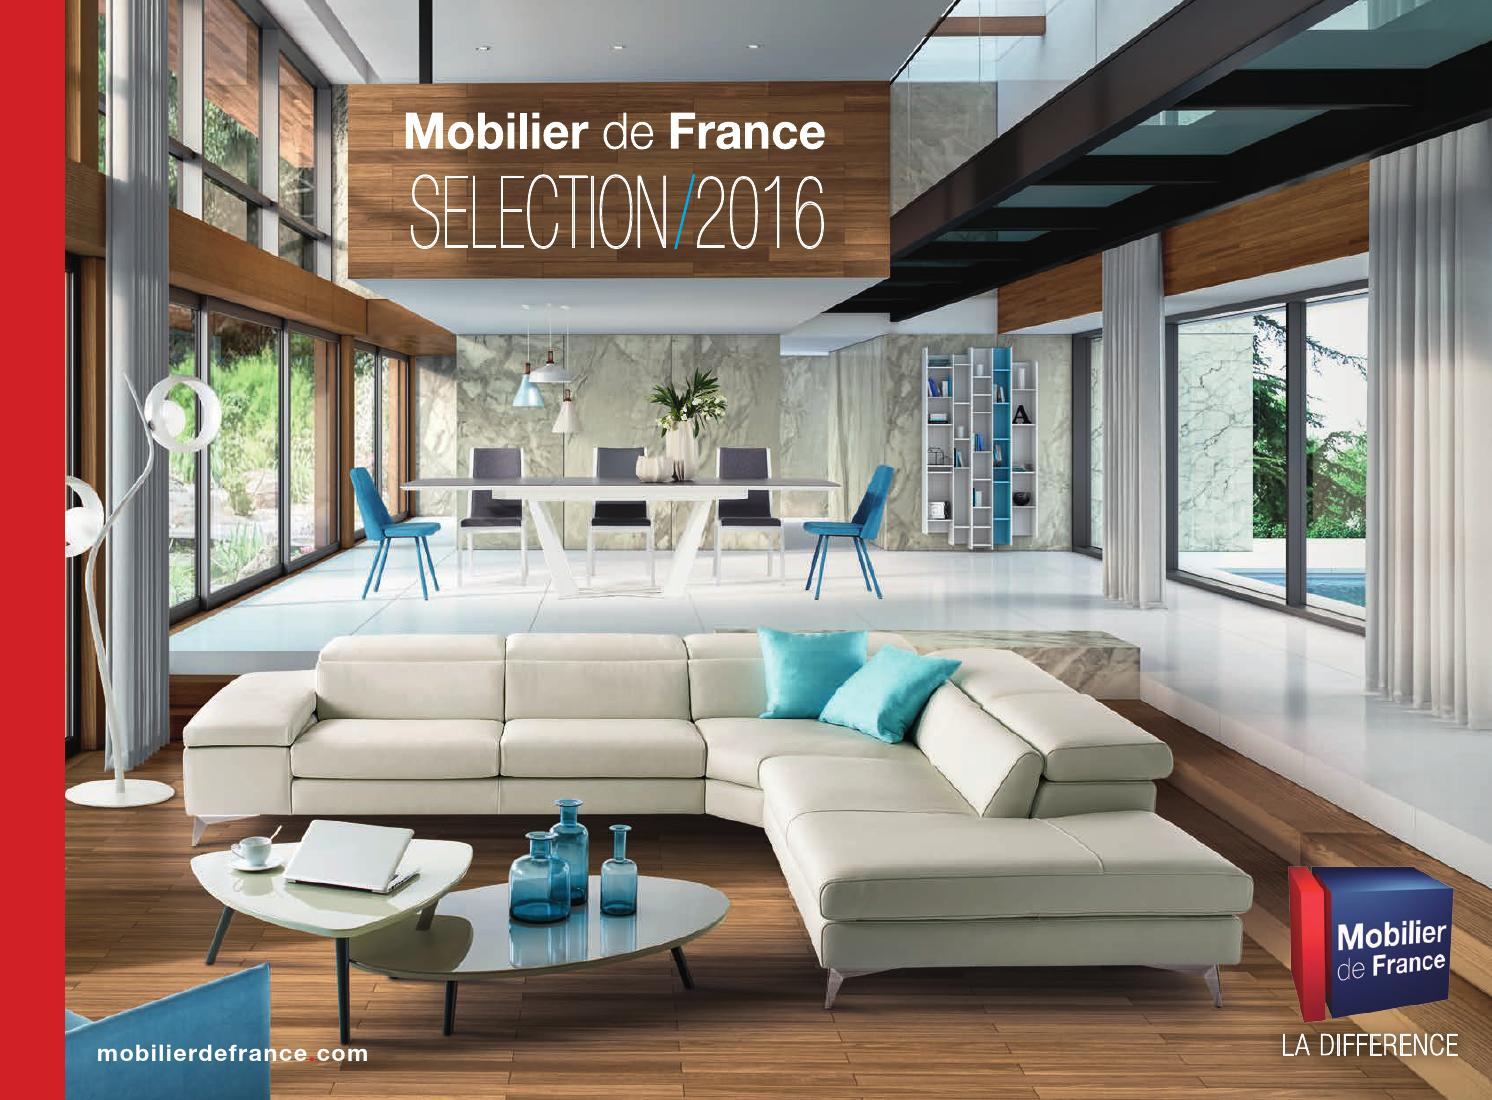 Mobilier De France Catalogue Mobilier De France Catalogue 2016 By Communication Issuu